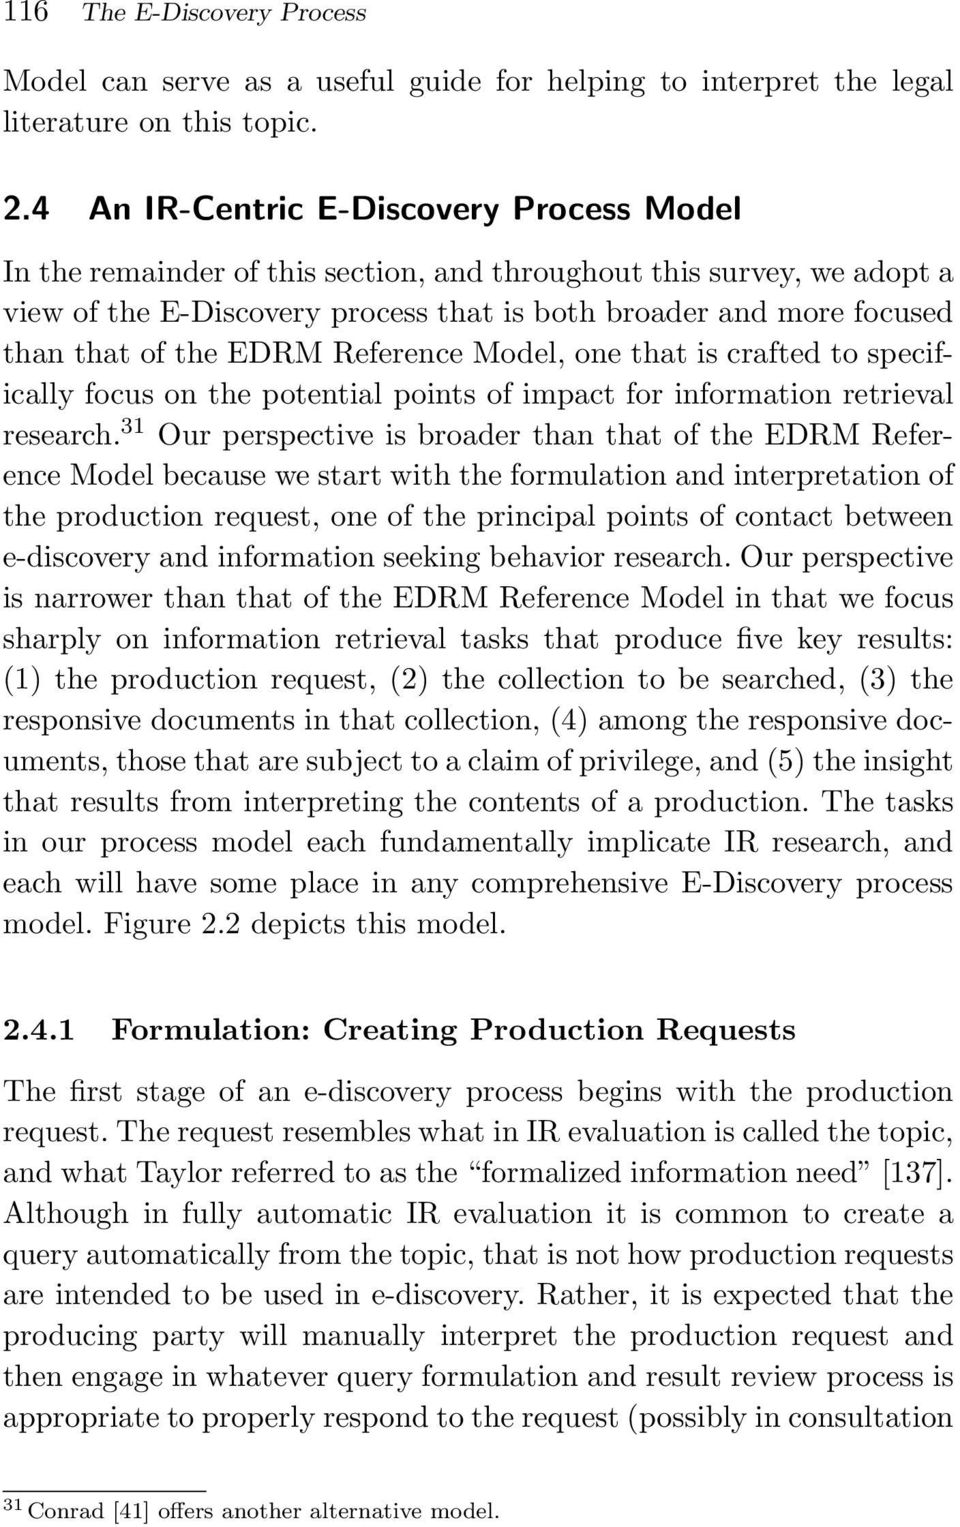 the EDRM Reference Model, one that is crafted to specifically focus on the potential points of impact for information retrieval research.